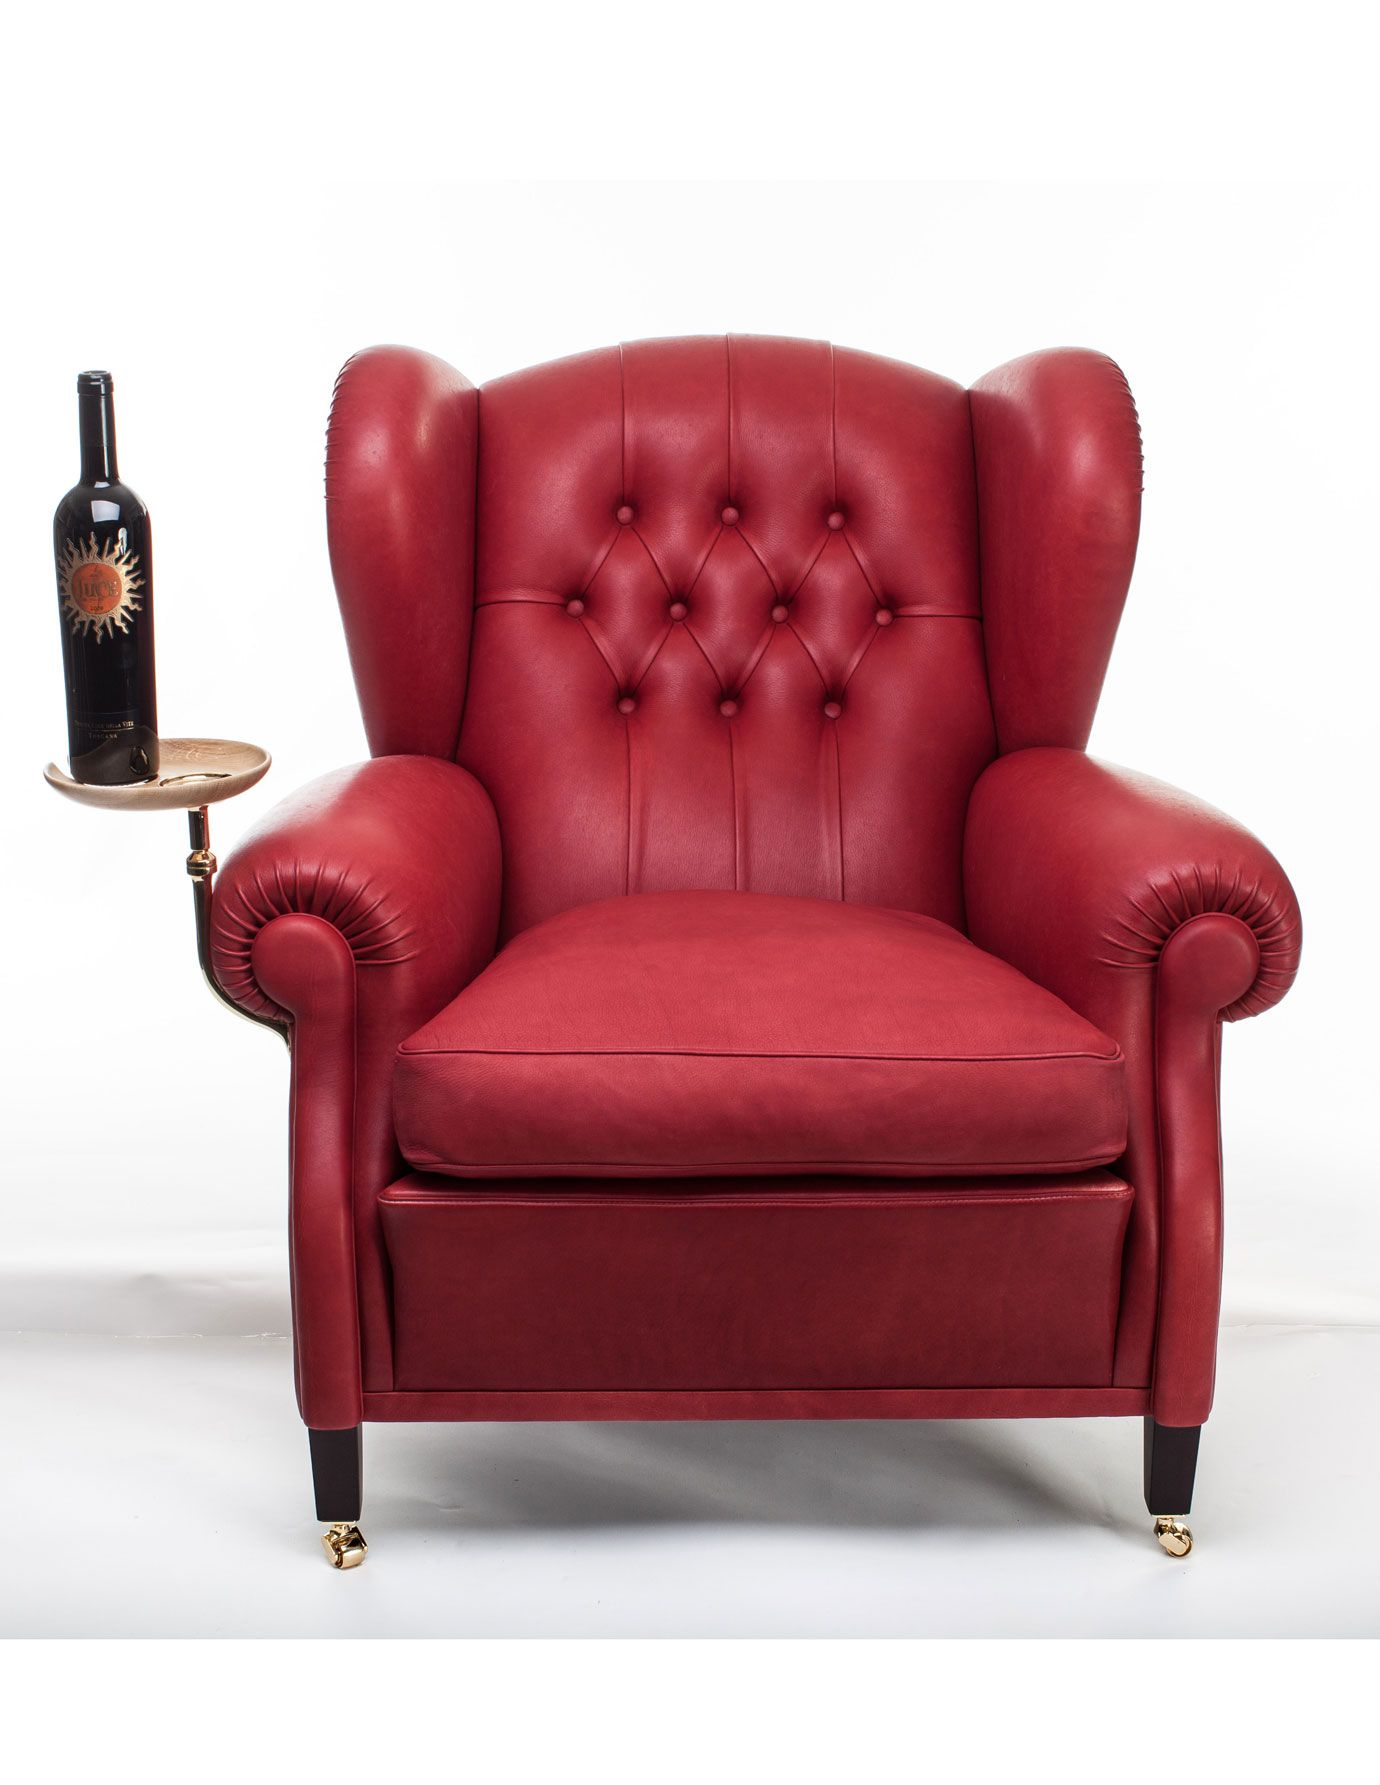 Armchair w/ small, attached table